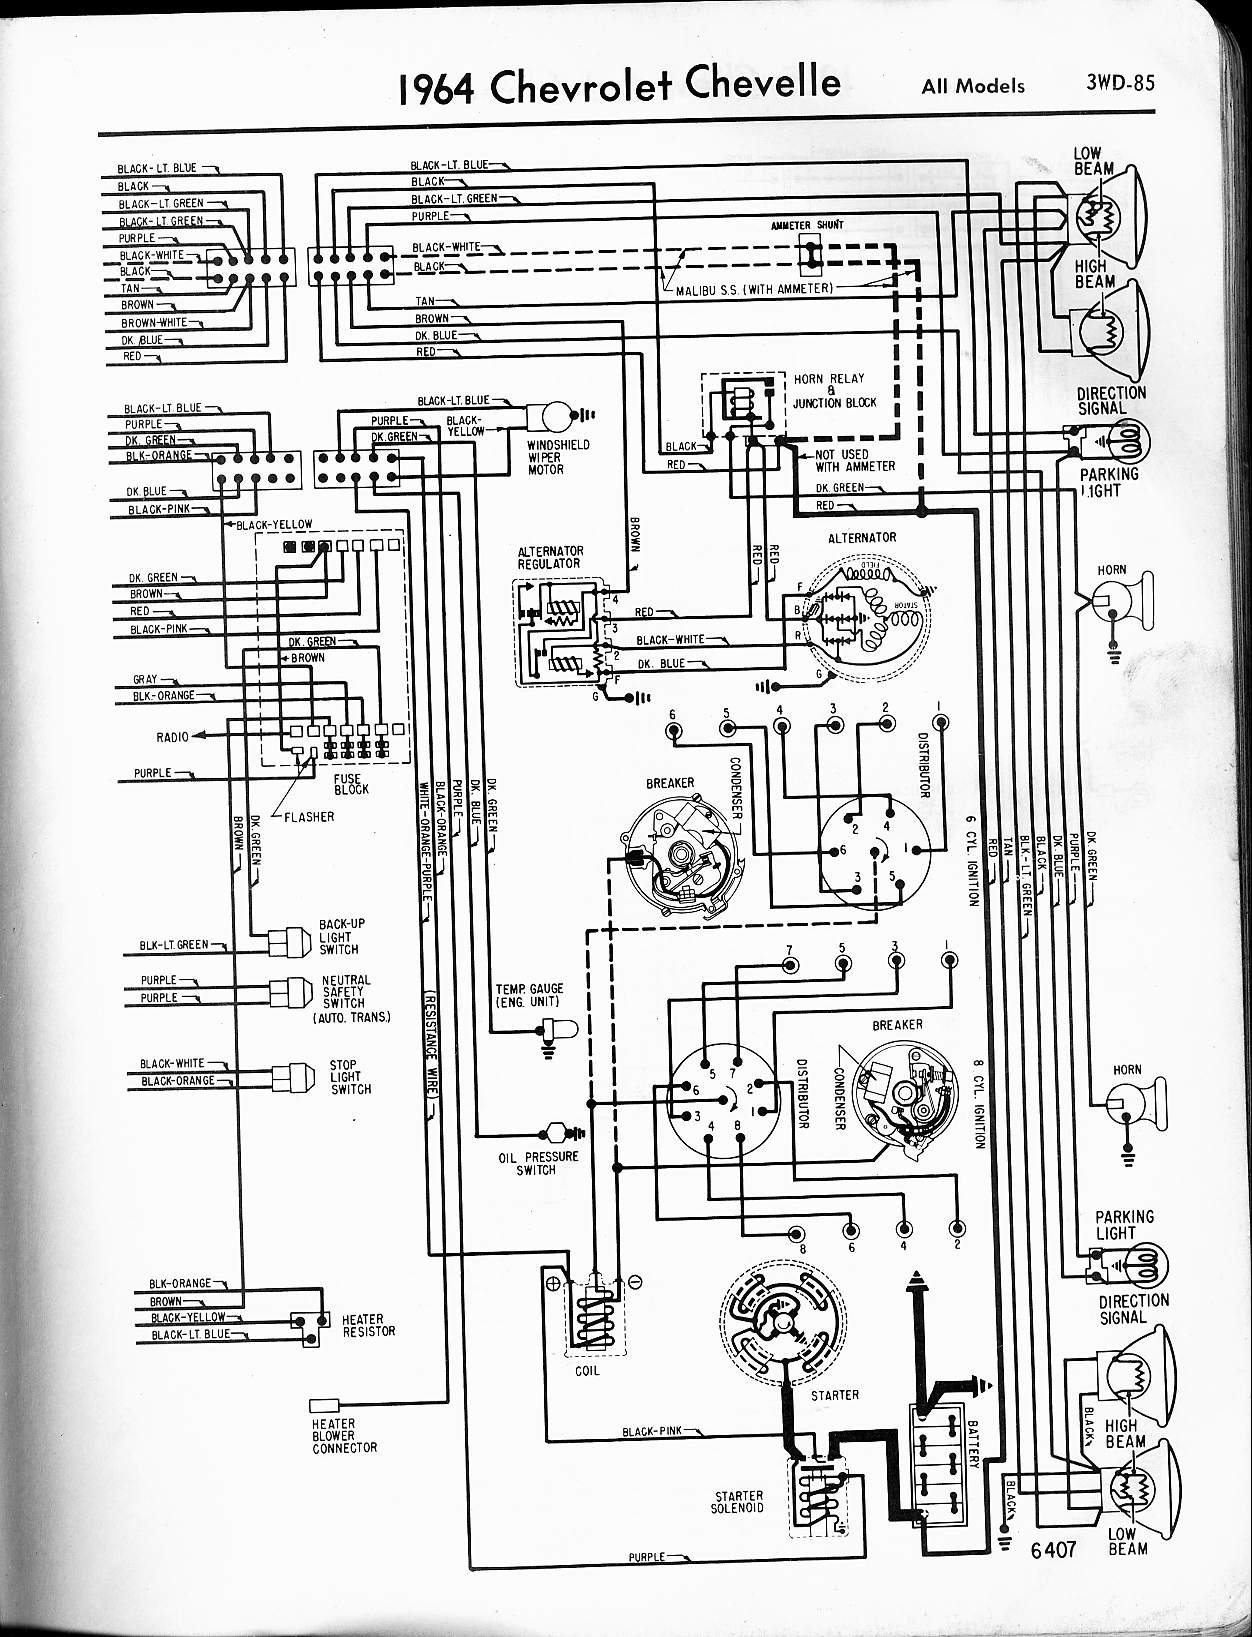 1970 Chevy C10 Fuse Box Diagram List Of Schematic Circuit 72 Only Picture Mustang Auto Electrical Wiring Rh Sistemagroup Me